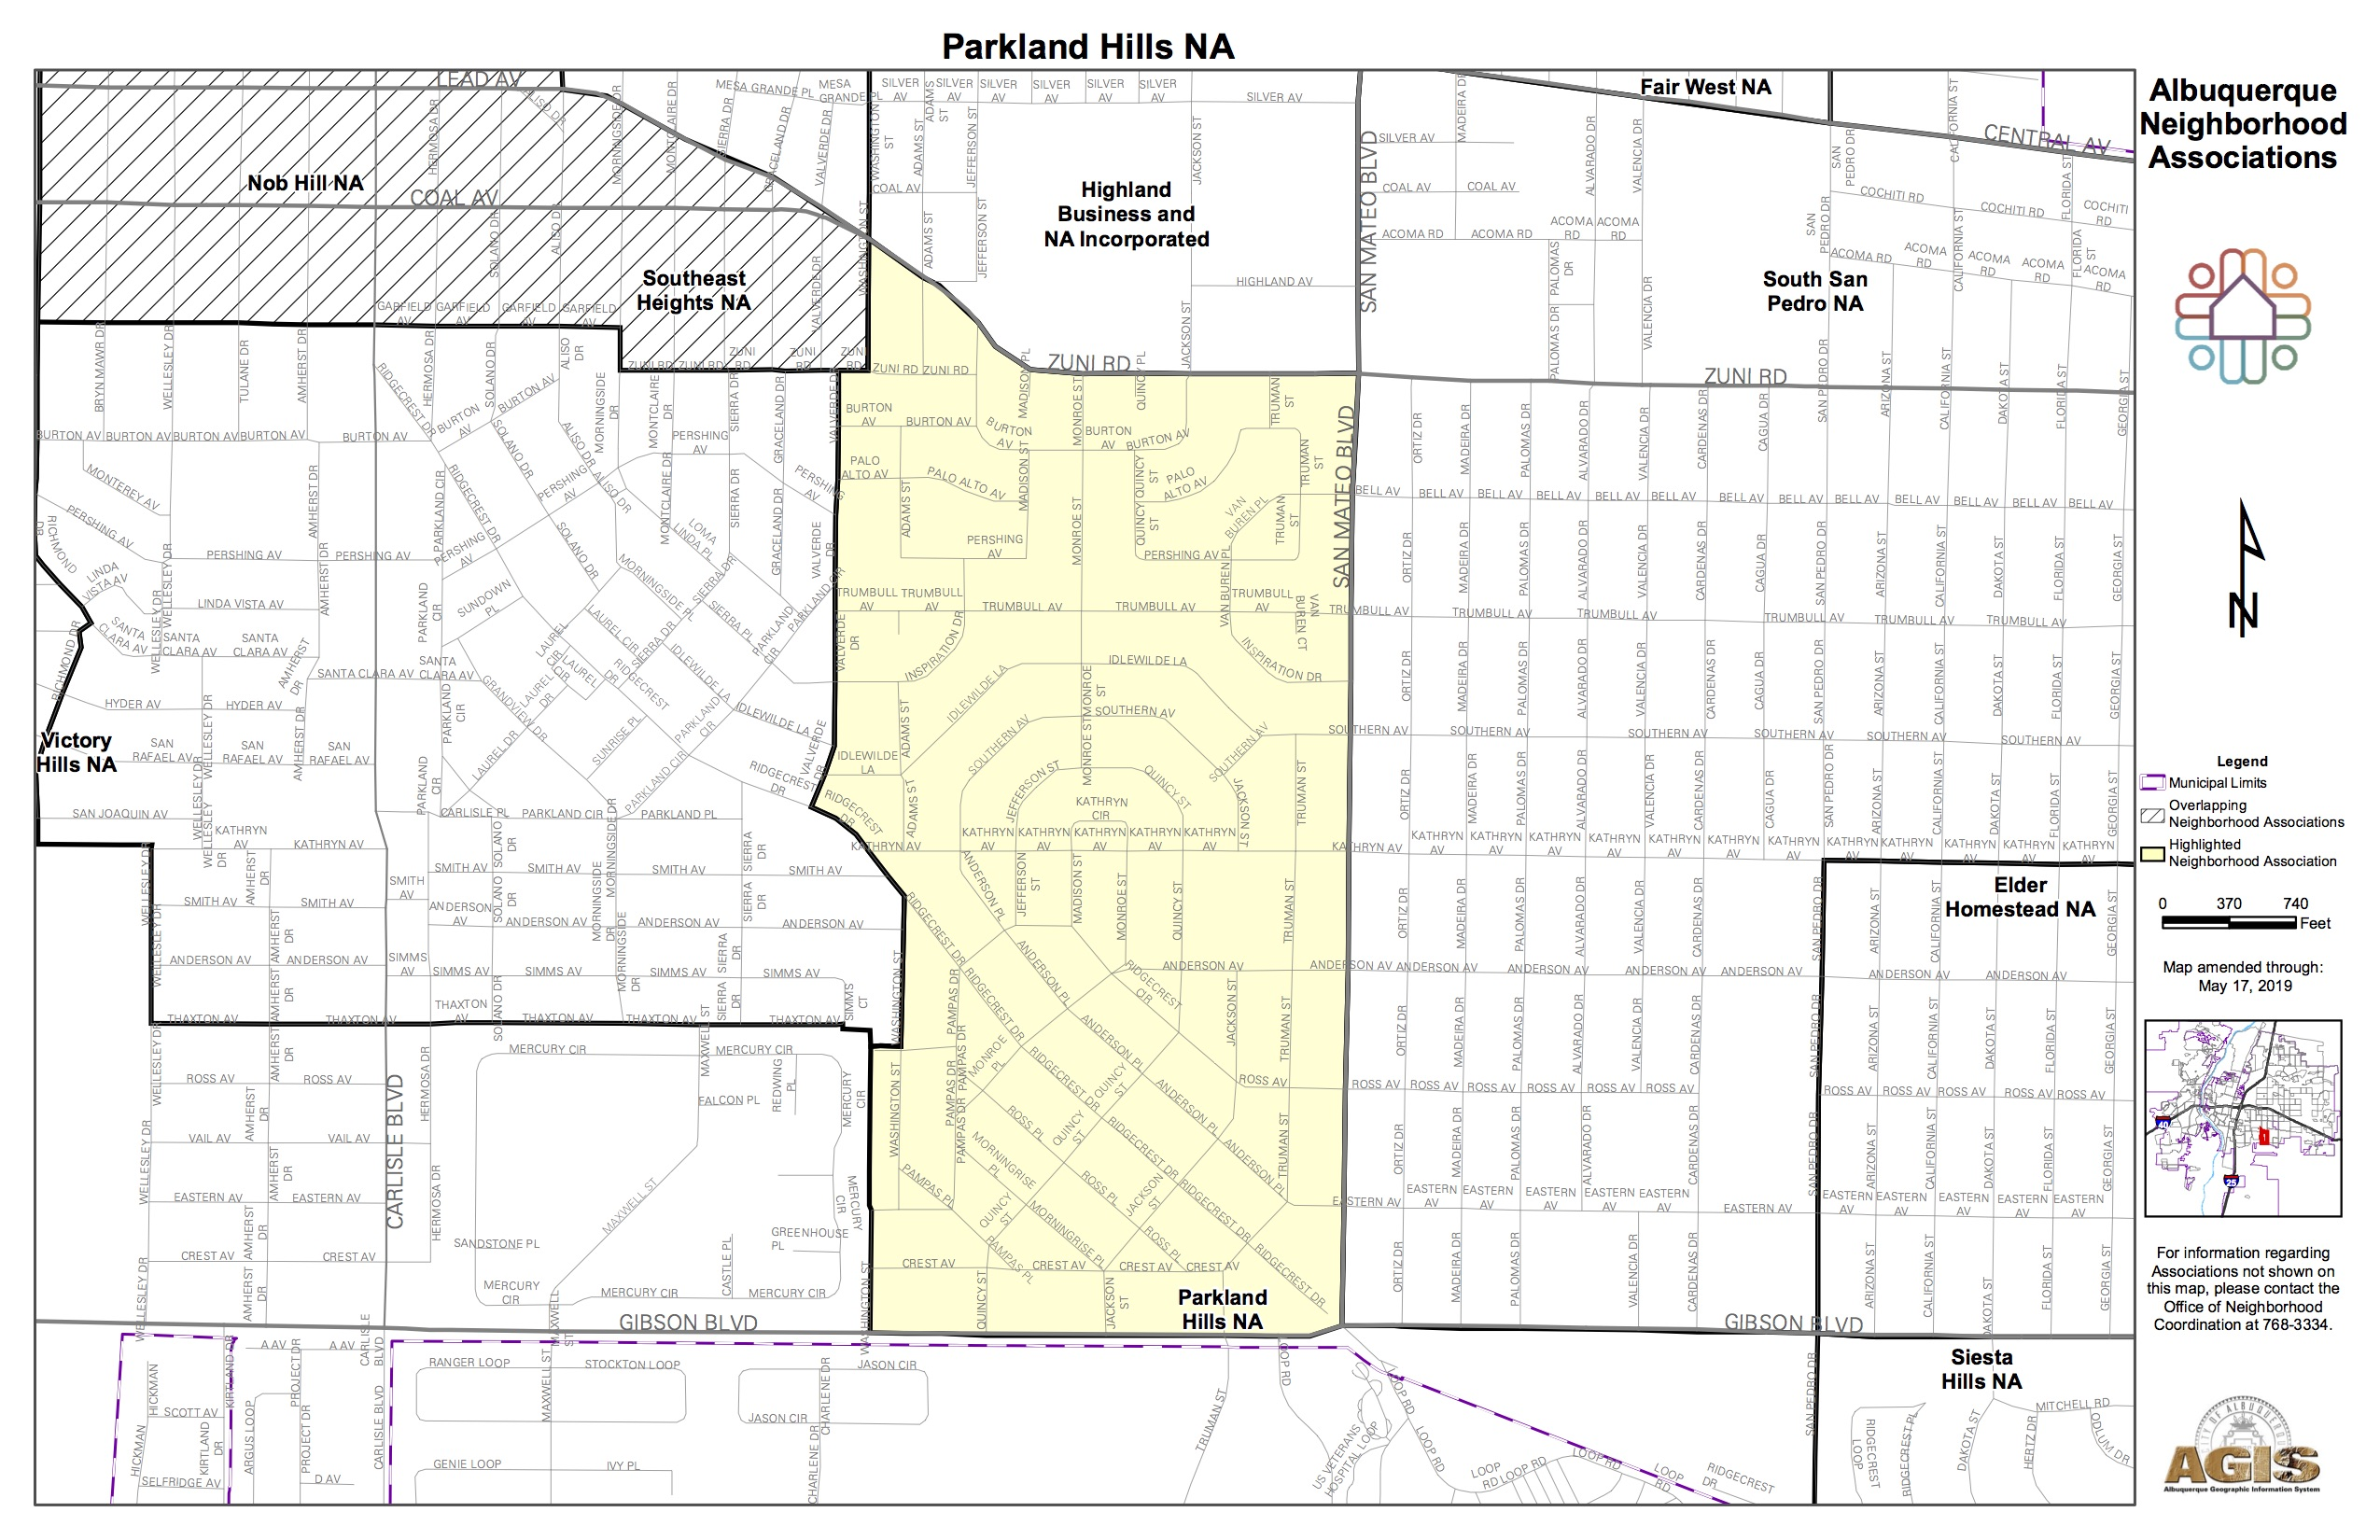 Adjacent Nob Hill Neighborhood Association Parkland Hills Map